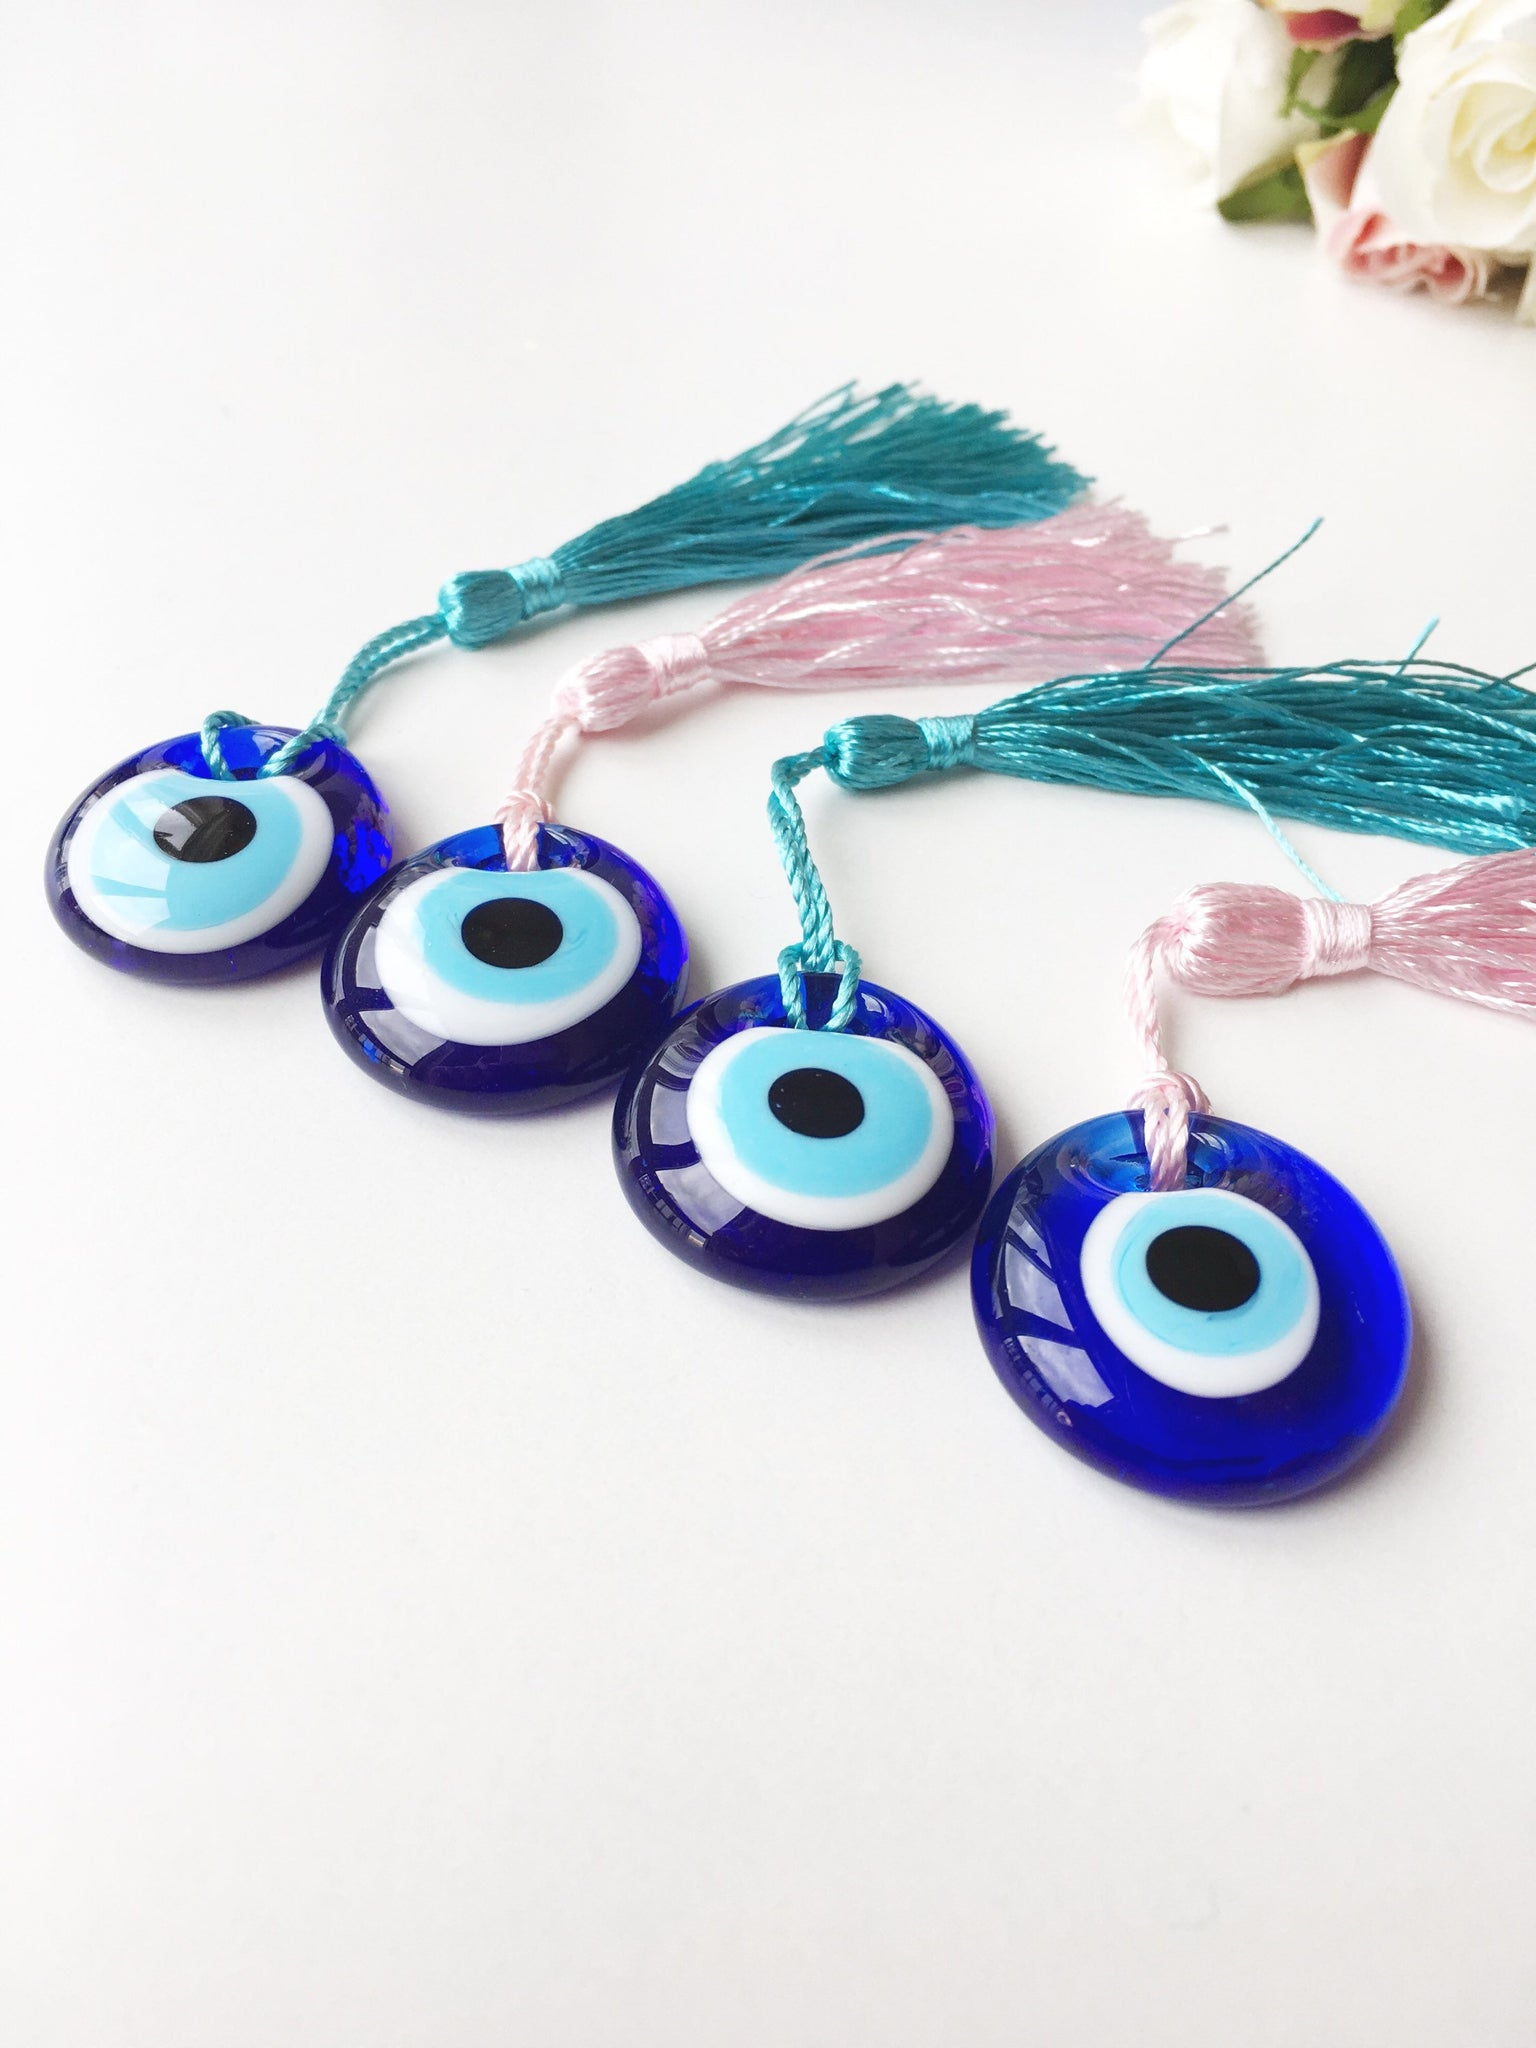 Wedding favors for guest, 50 pcs, evil eye wedding favors ...